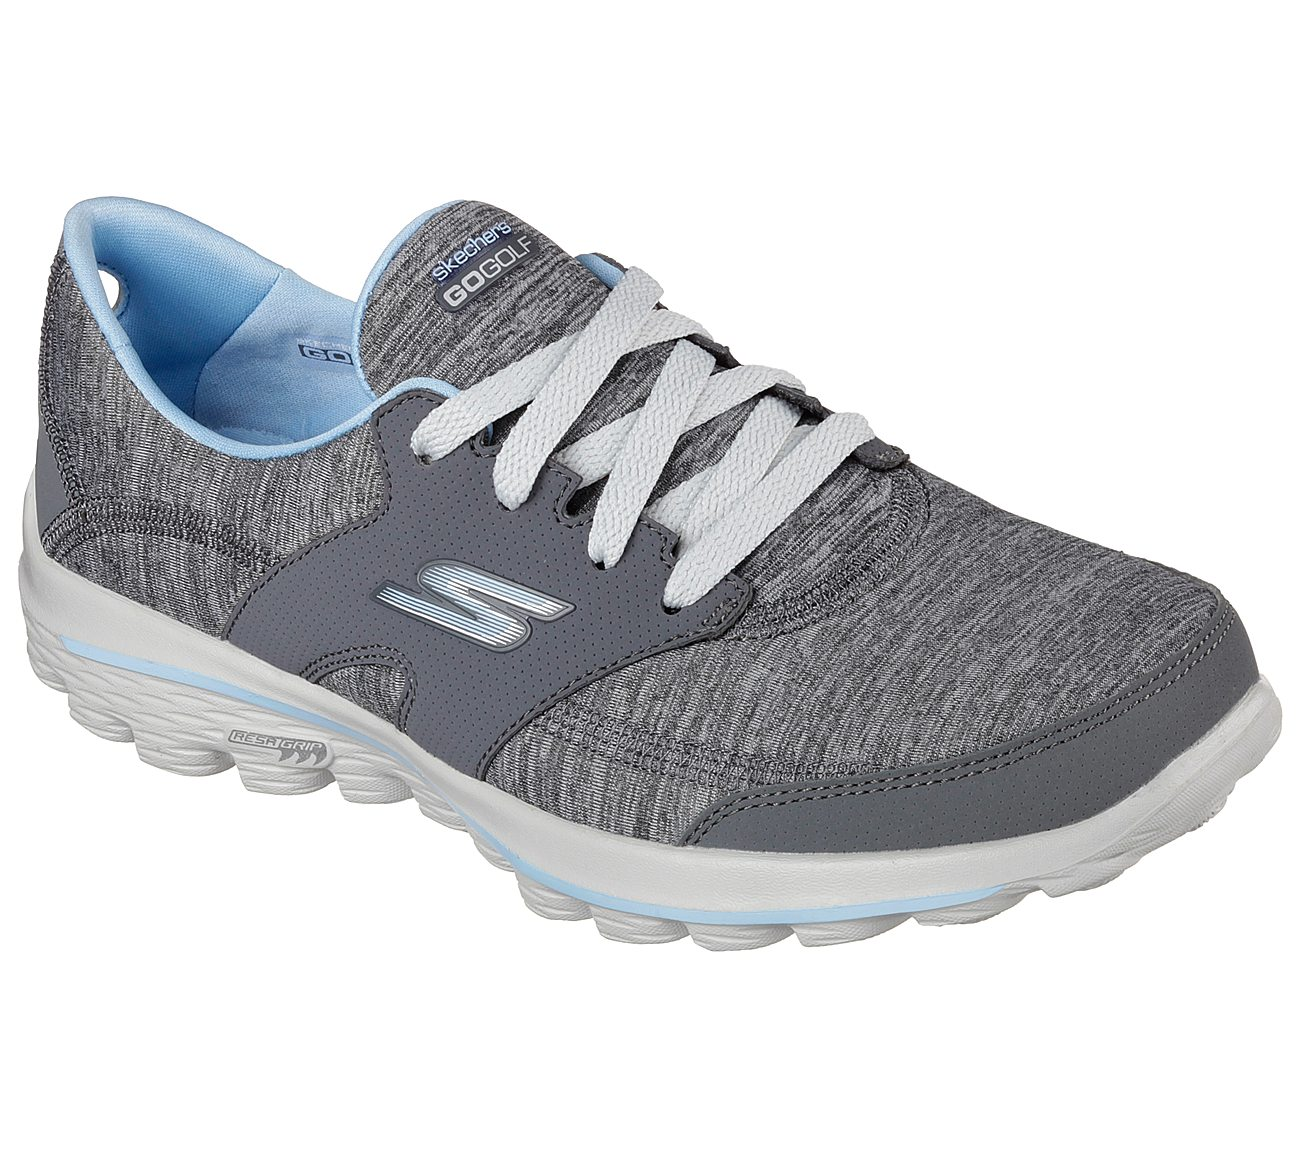 best price on skechers go walk shoes